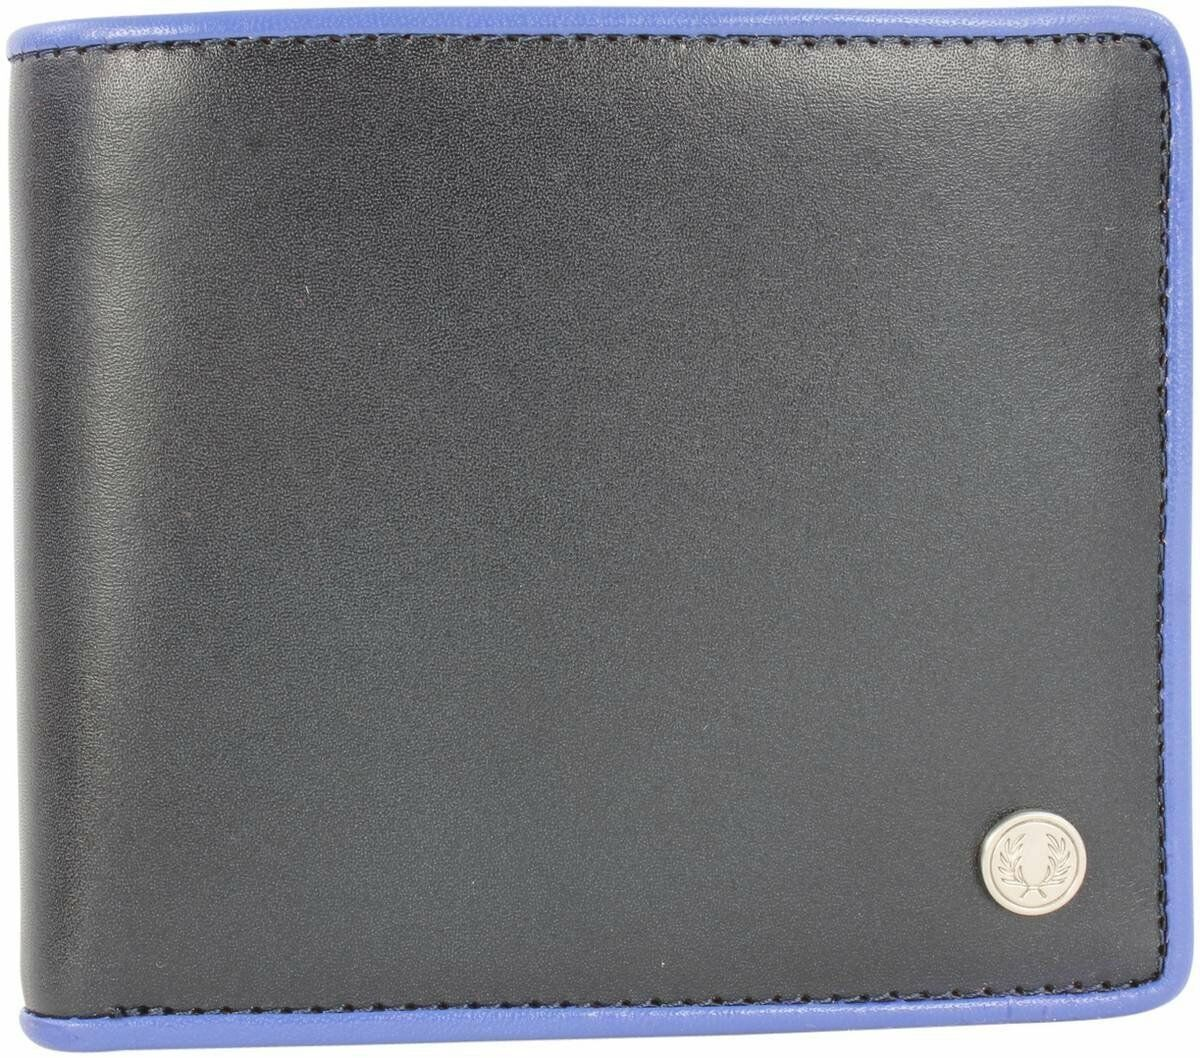 Fred Perry Contrast Tipped Billfold Men's Leather Wallet -- L7315-608 -- Navy